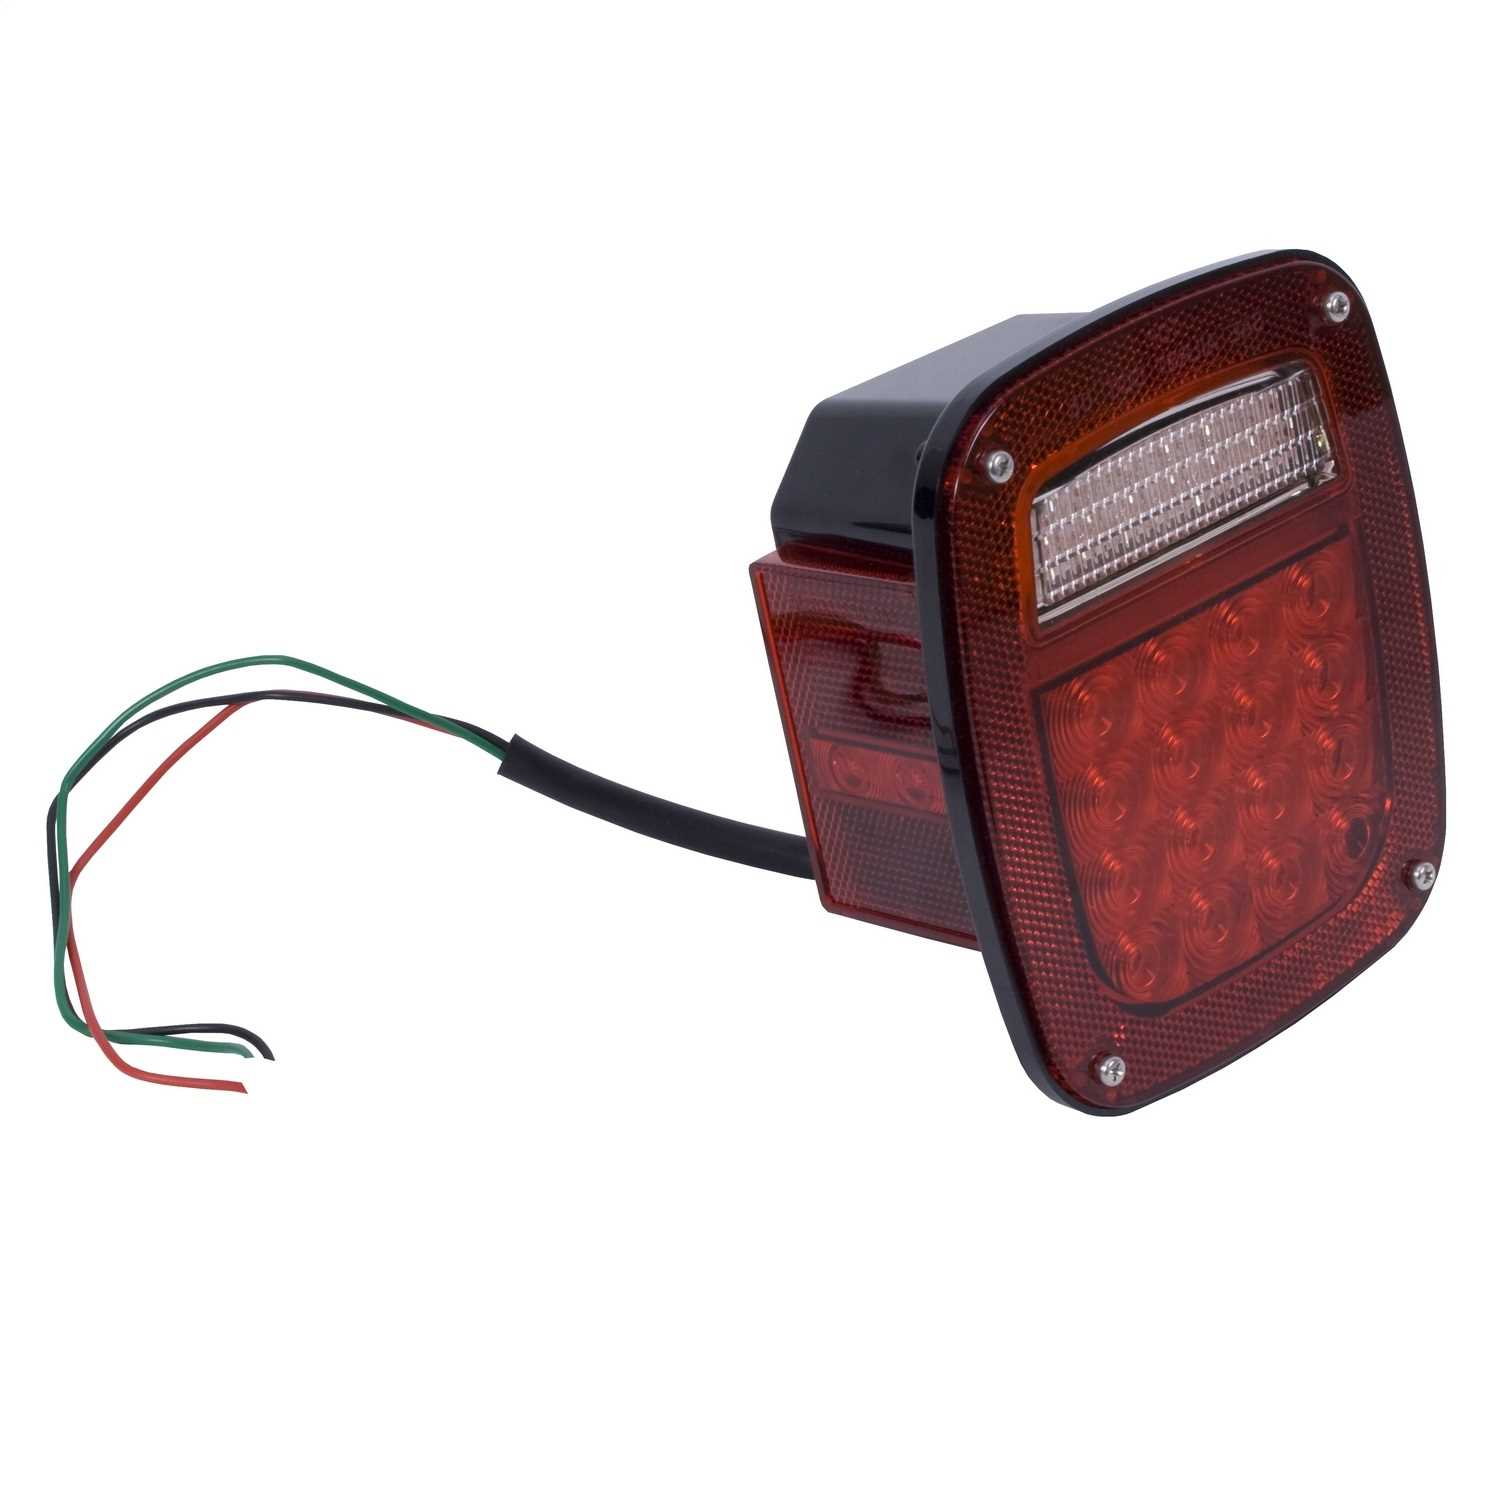 Rugged Ridge LED Taillight Assembly 12403 83 12403 83